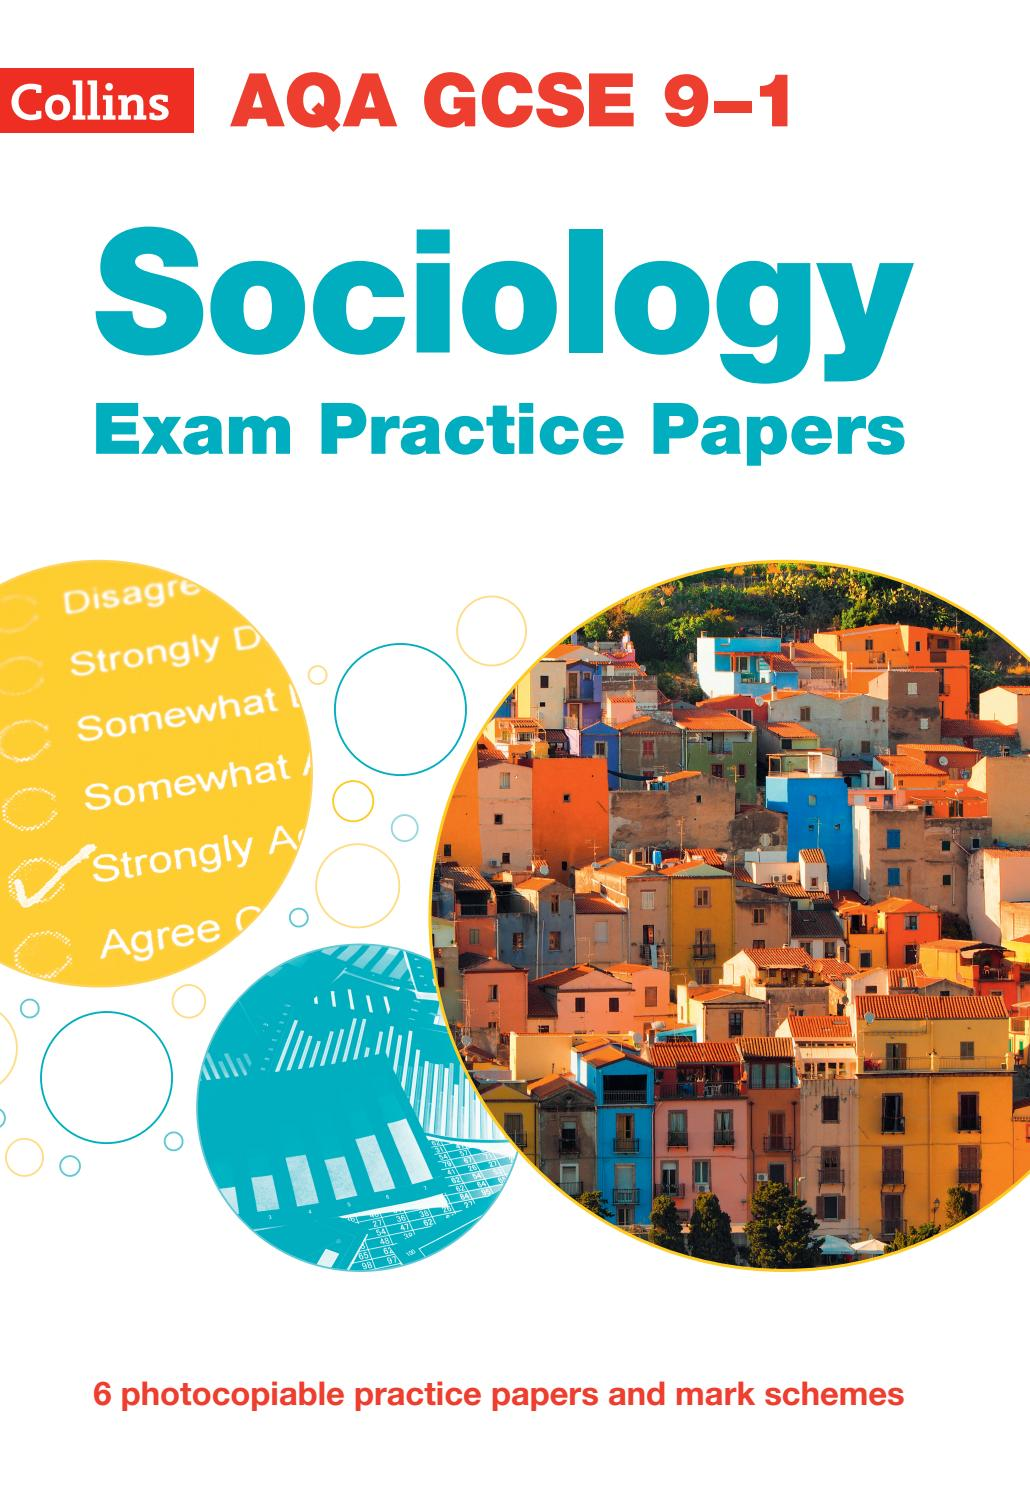 011 Aqa Sociology Research Methods Pasts Page 1 Fantastic Past Papers Gcse Questions Full